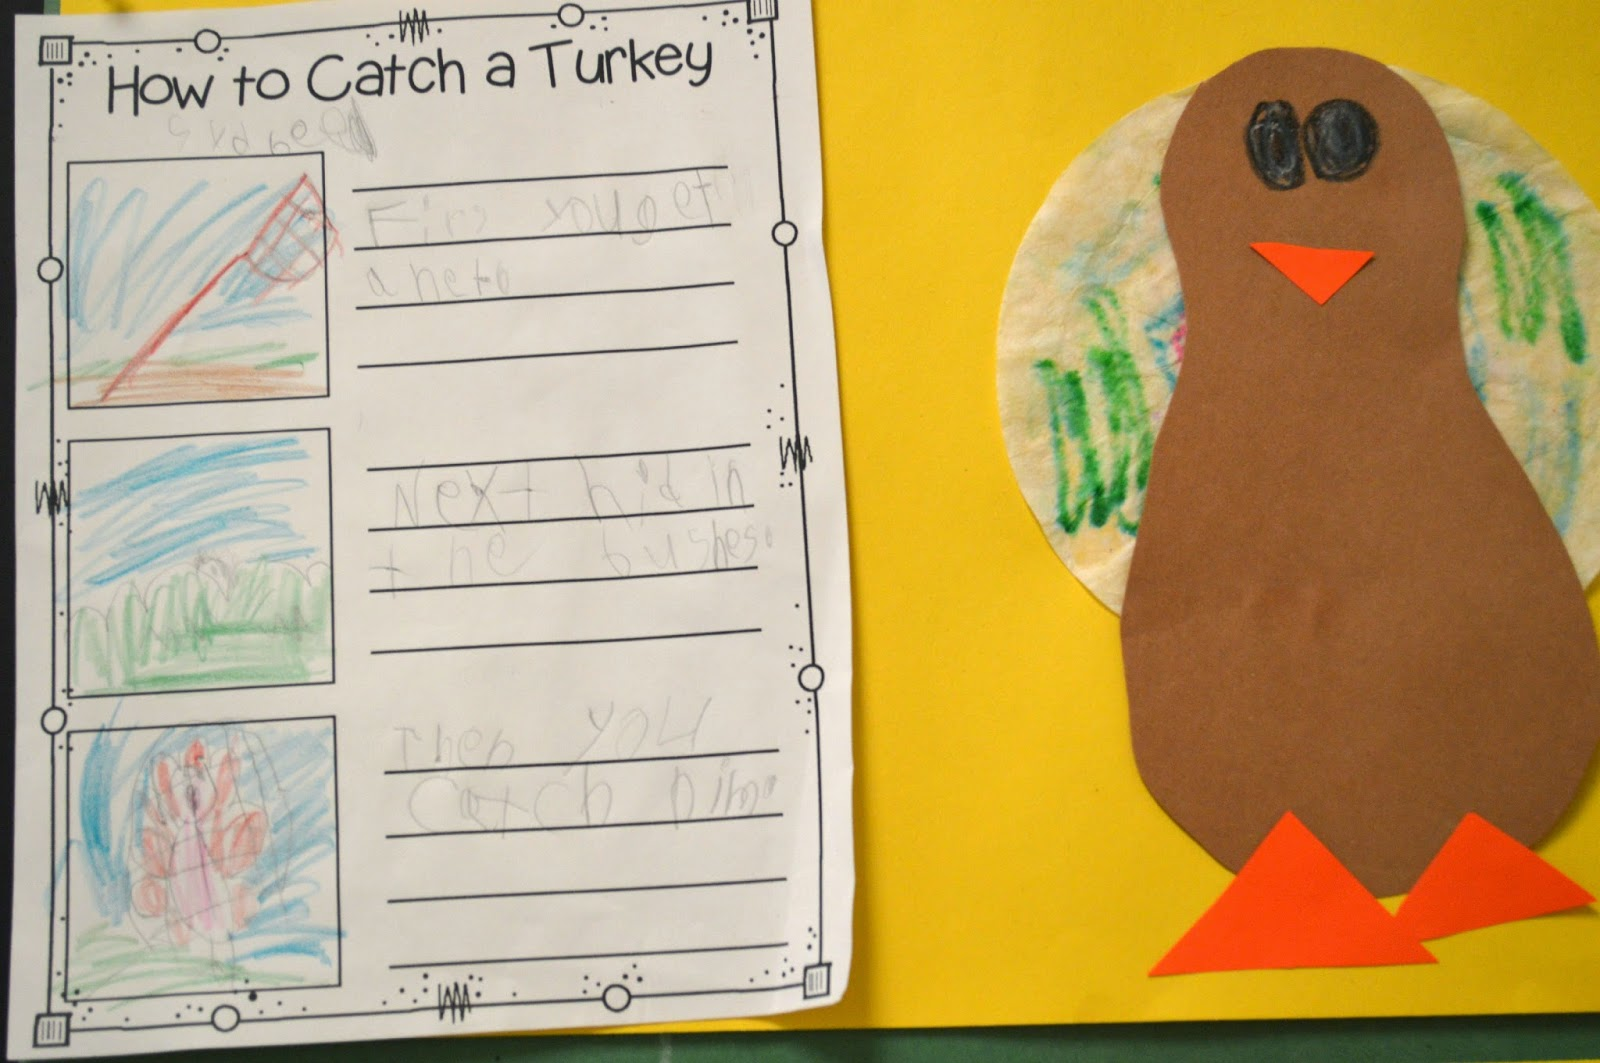 hight resolution of How to Catch a Turkey! Procedural Writing - Mrs. Jump's Class